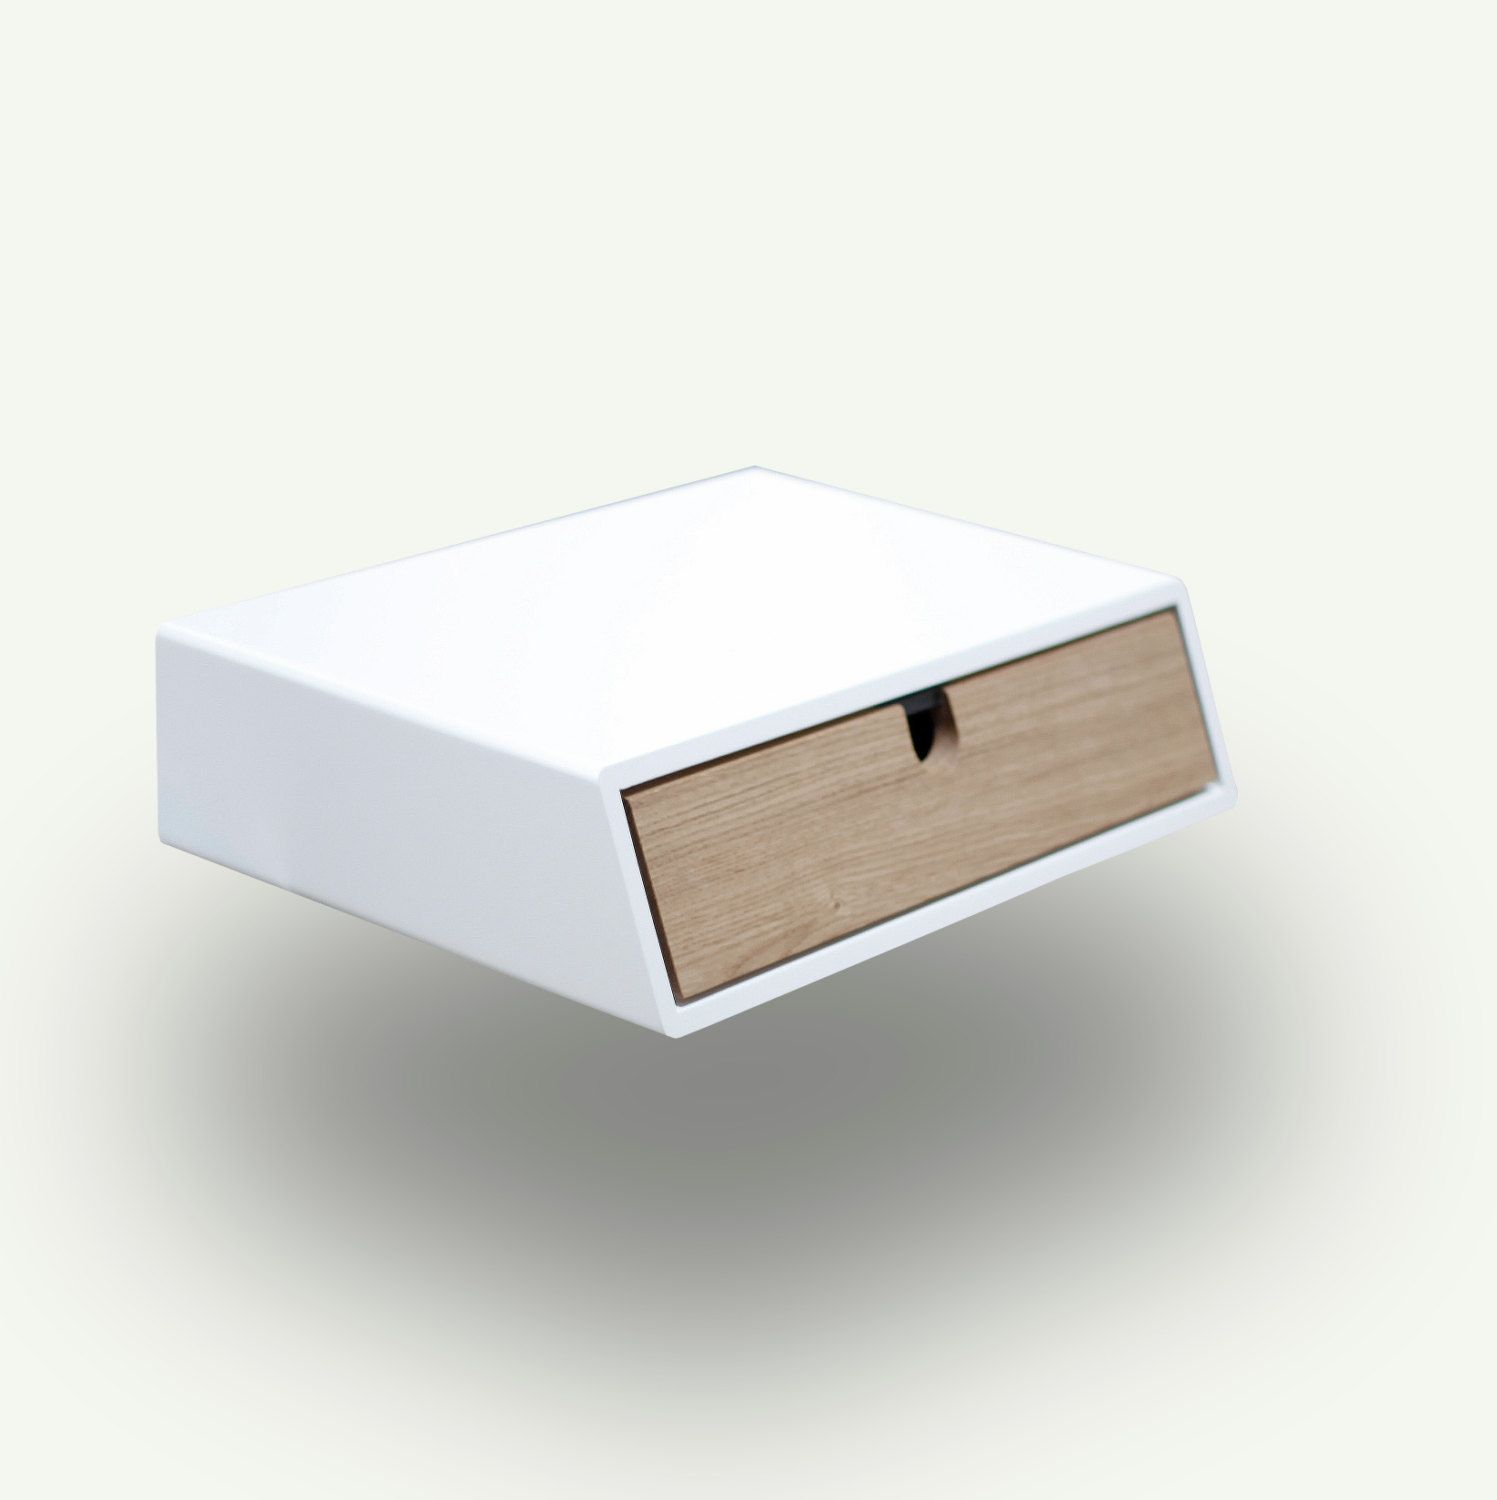 Floating White nightstand / Bedside Table / Drawer,  Scandinavian Mid-Century Modern Retro Style with 1 drawer made of oak wood by Habitables on Etsy https://www.etsy.com/listing/209576811/floating-white-nightstand-bedside-table